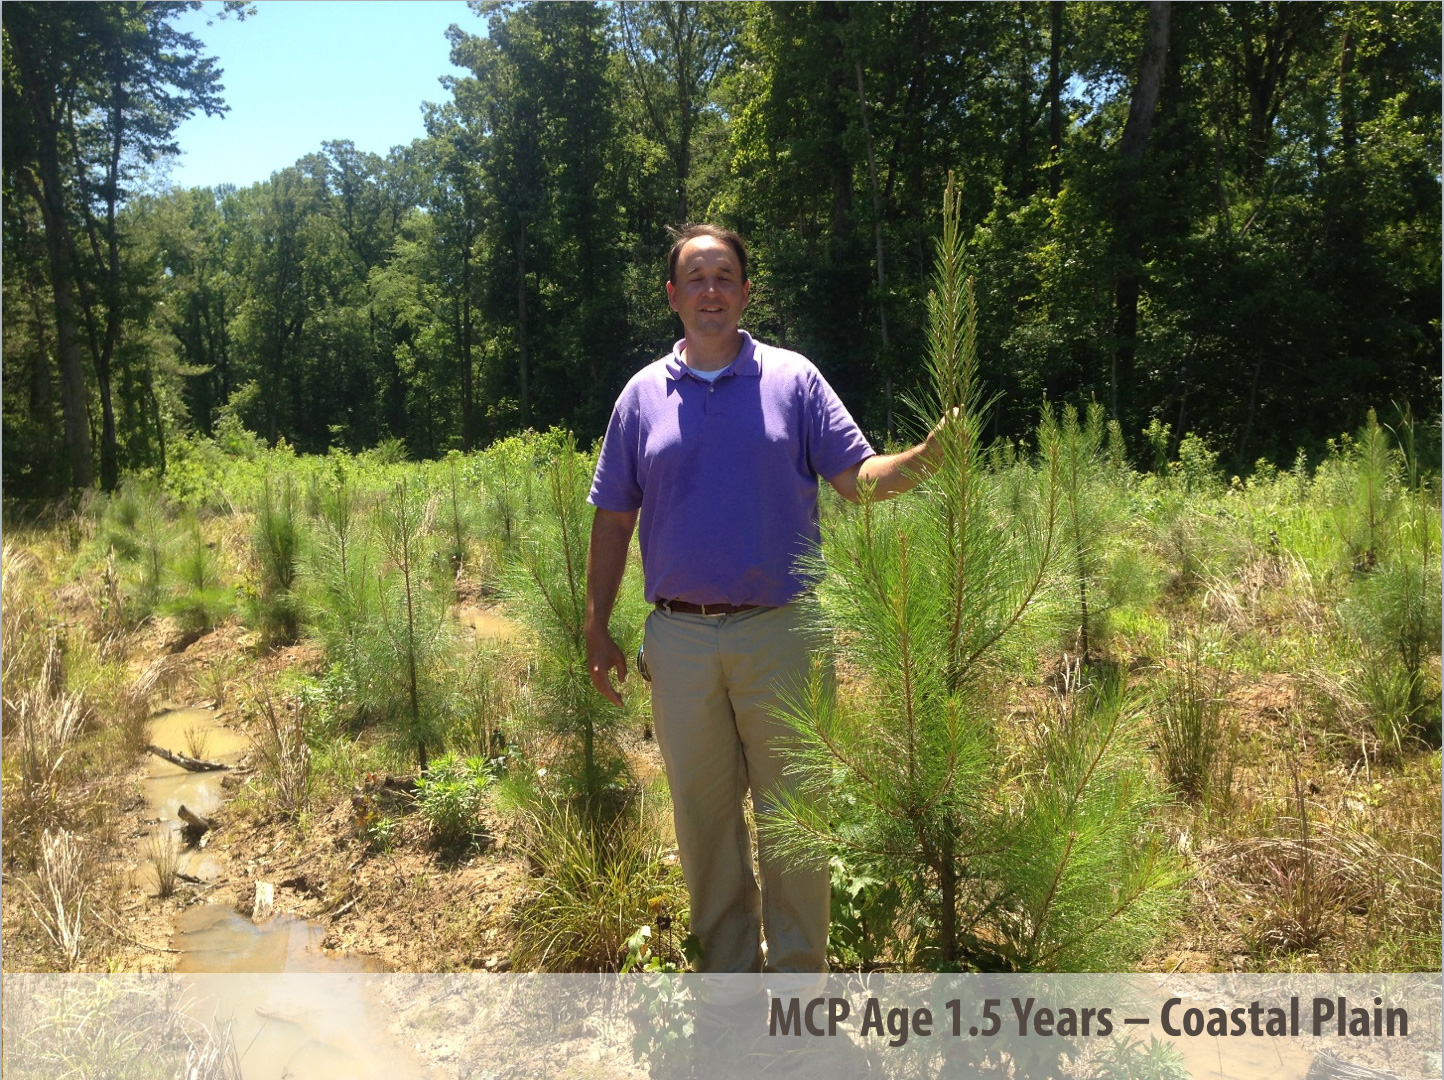 ArborGen MCP® Loblolly Pine at 1.5 Years in Coastal Plain